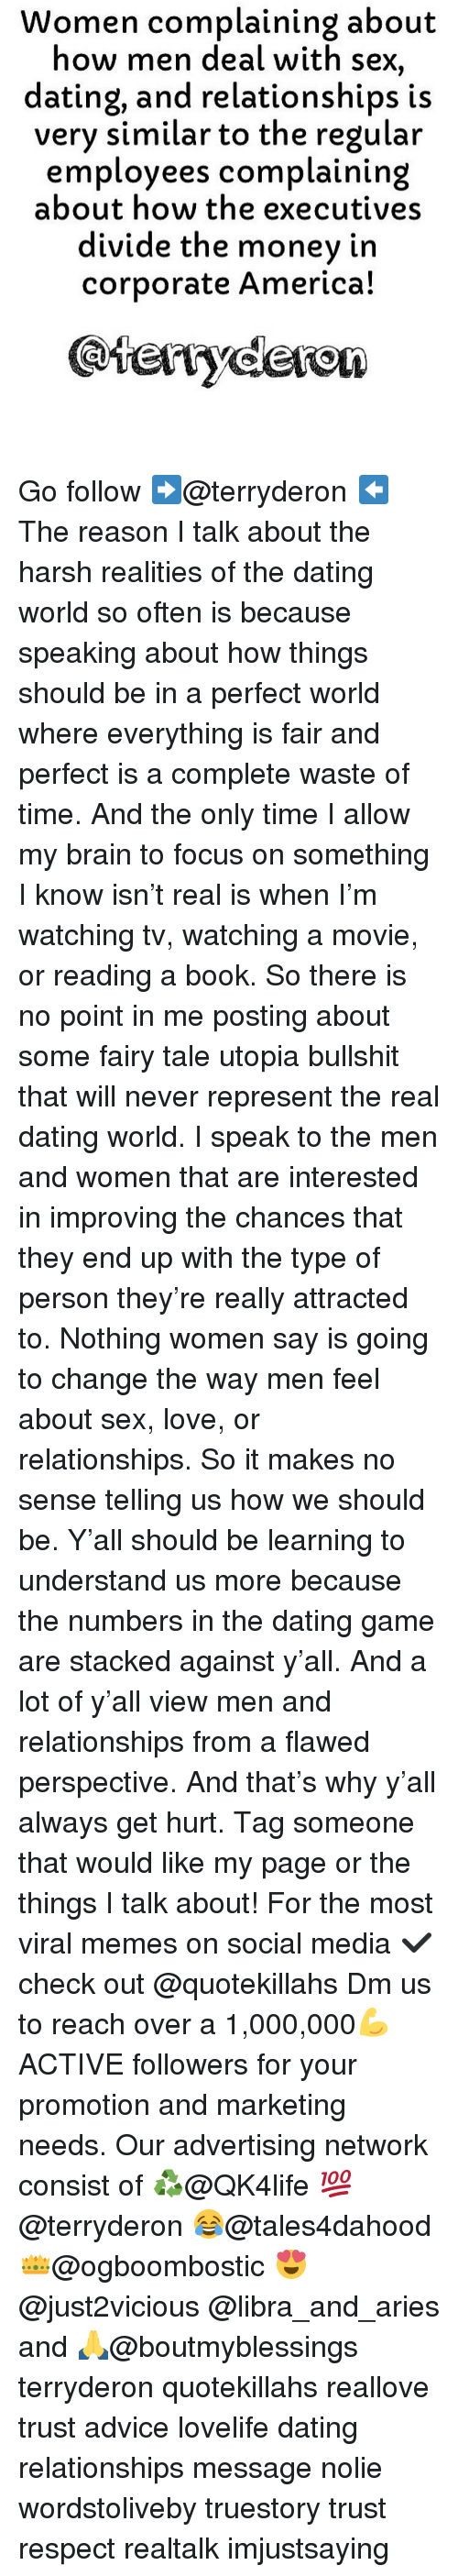 Memes, Libra, and Harsh: Women complaining about  how men deal with sex,  dating, and relationships is  very similar to the regular  employees complaining  about how the executives  divide the money in  corporate America! Go follow ➡@terryderon ⬅️ The reason I talk about the harsh realities of the dating world so often is because speaking about how things should be in a perfect world where everything is fair and perfect is a complete waste of time. And the only time I allow my brain to focus on something I know isn't real is when I'm watching tv, watching a movie, or reading a book. So there is no point in me posting about some fairy tale utopia bullshit that will never represent the real dating world. I speak to the men and women that are interested in improving the chances that they end up with the type of person they're really attracted to. Nothing women say is going to change the way men feel about sex, love, or relationships. So it makes no sense telling us how we should be. Y'all should be learning to understand us more because the numbers in the dating game are stacked against y'all. And a lot of y'all view men and relationships from a flawed perspective. And that's why y'all always get hurt. Tag someone that would like my page or the things I talk about! For the most viral memes on social media ✔check out @quotekillahs Dm us to reach over a 1,000,000💪ACTIVE followers for your promotion and marketing needs. Our advertising network consist of ♻@QK4life 💯@terryderon 😂@tales4dahood 👑@ogboombostic 😍@just2vicious @libra_and_aries and 🙏@boutmyblessings terryderon quotekillahs reallove trust advice lovelife dating relationships message nolie wordstoliveby truestory trust respect realtalk imjustsaying